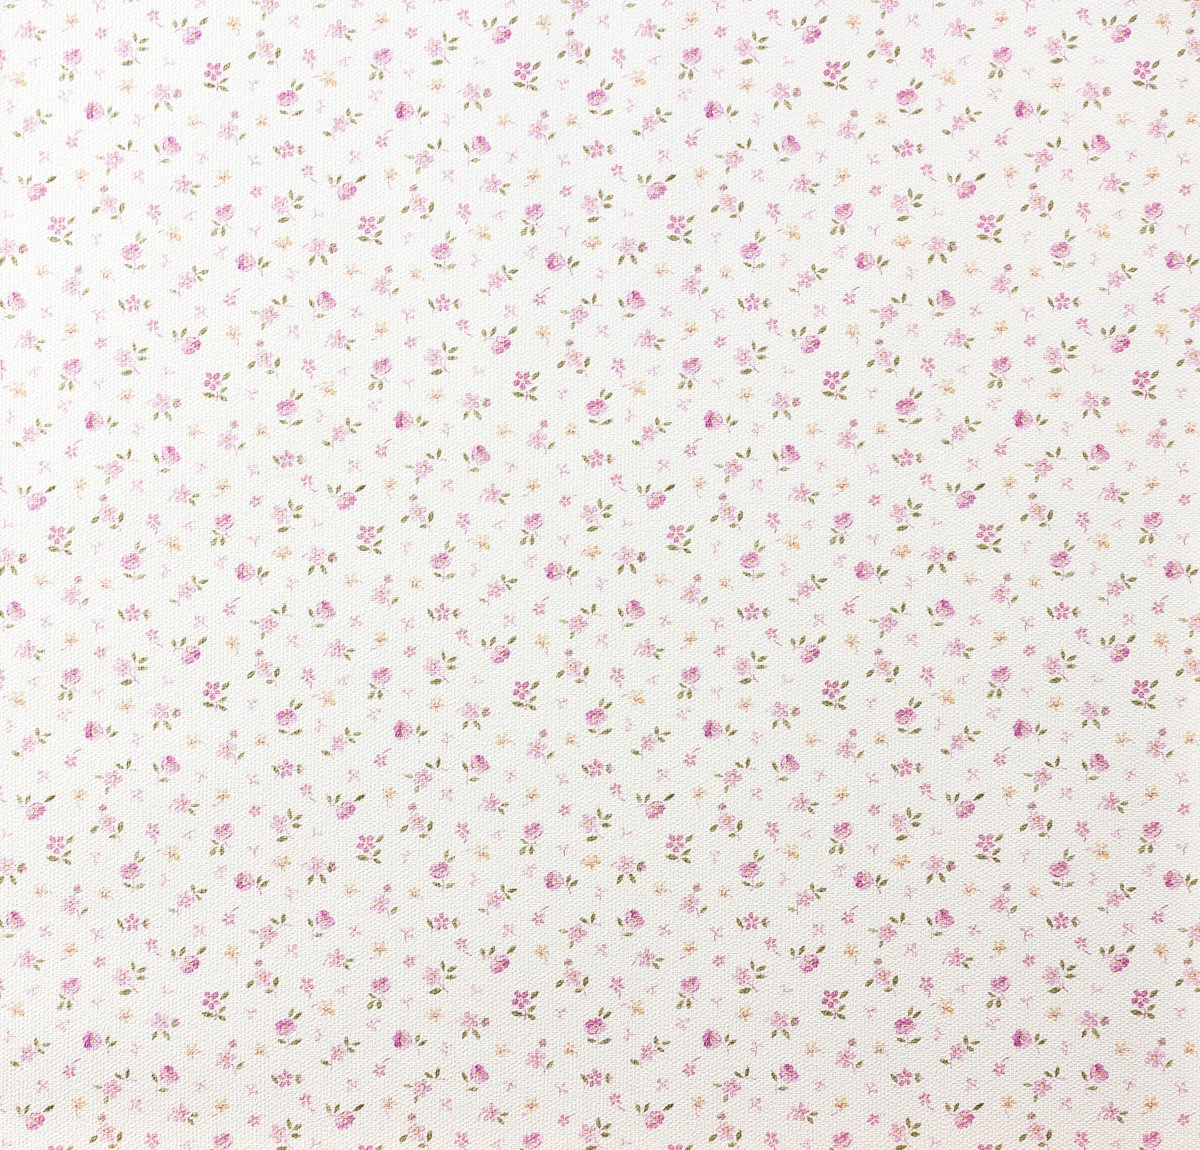 cottage style wallpaper fleuri pastel a s 93768 2 937682 flowers rose green white. Black Bedroom Furniture Sets. Home Design Ideas